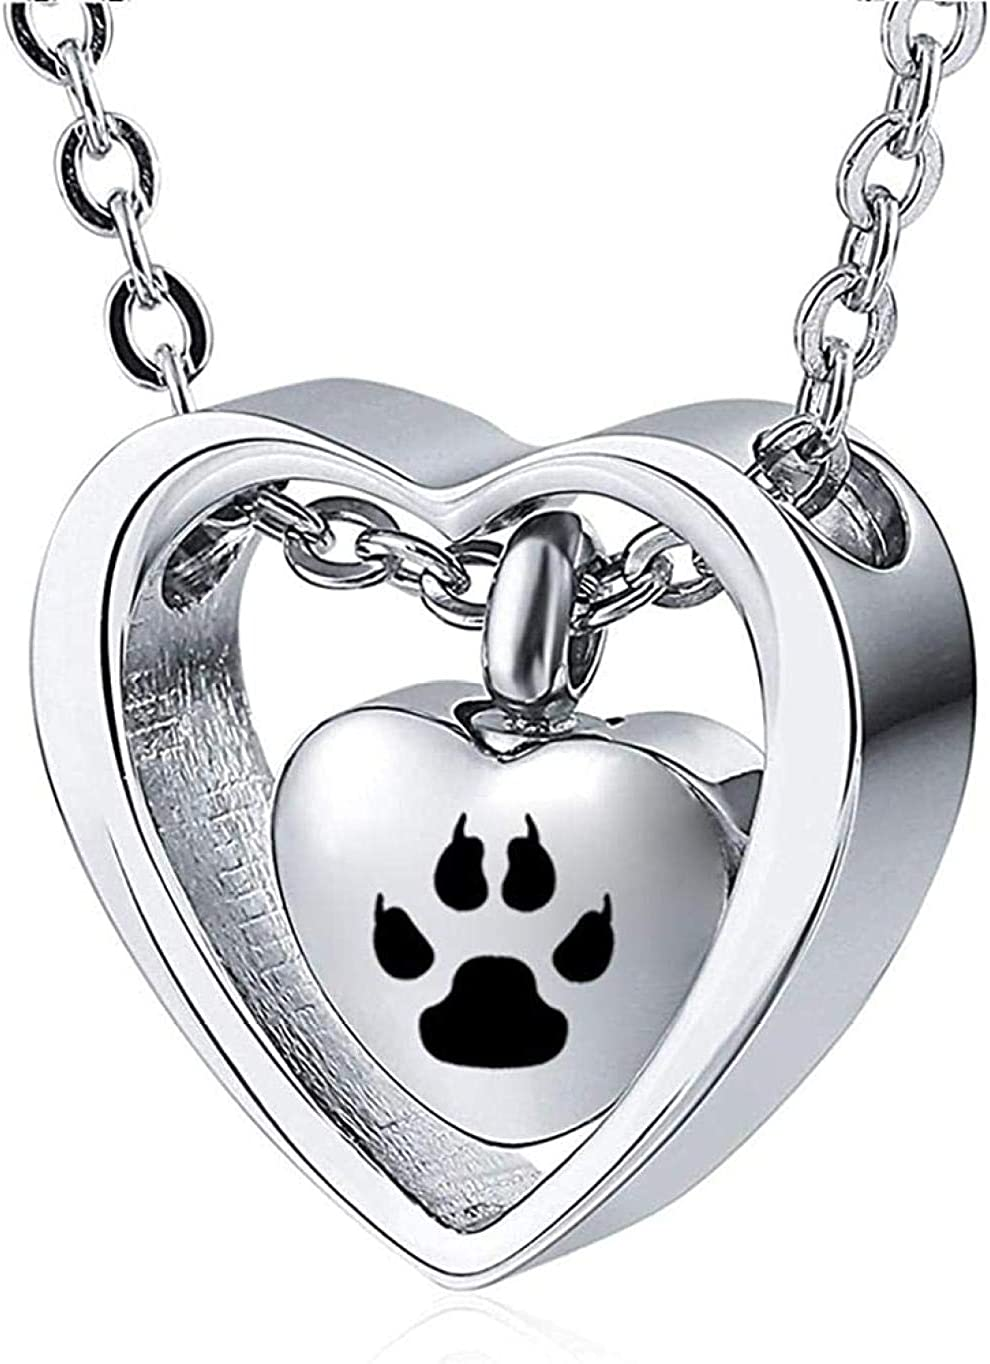 AEGW Cremation Urn Necklace Memorial Jewelry Urn Necklace Grey Stainless Steel Urn Necklace Cremation Jewelry Pendant Female Style-Black Paw